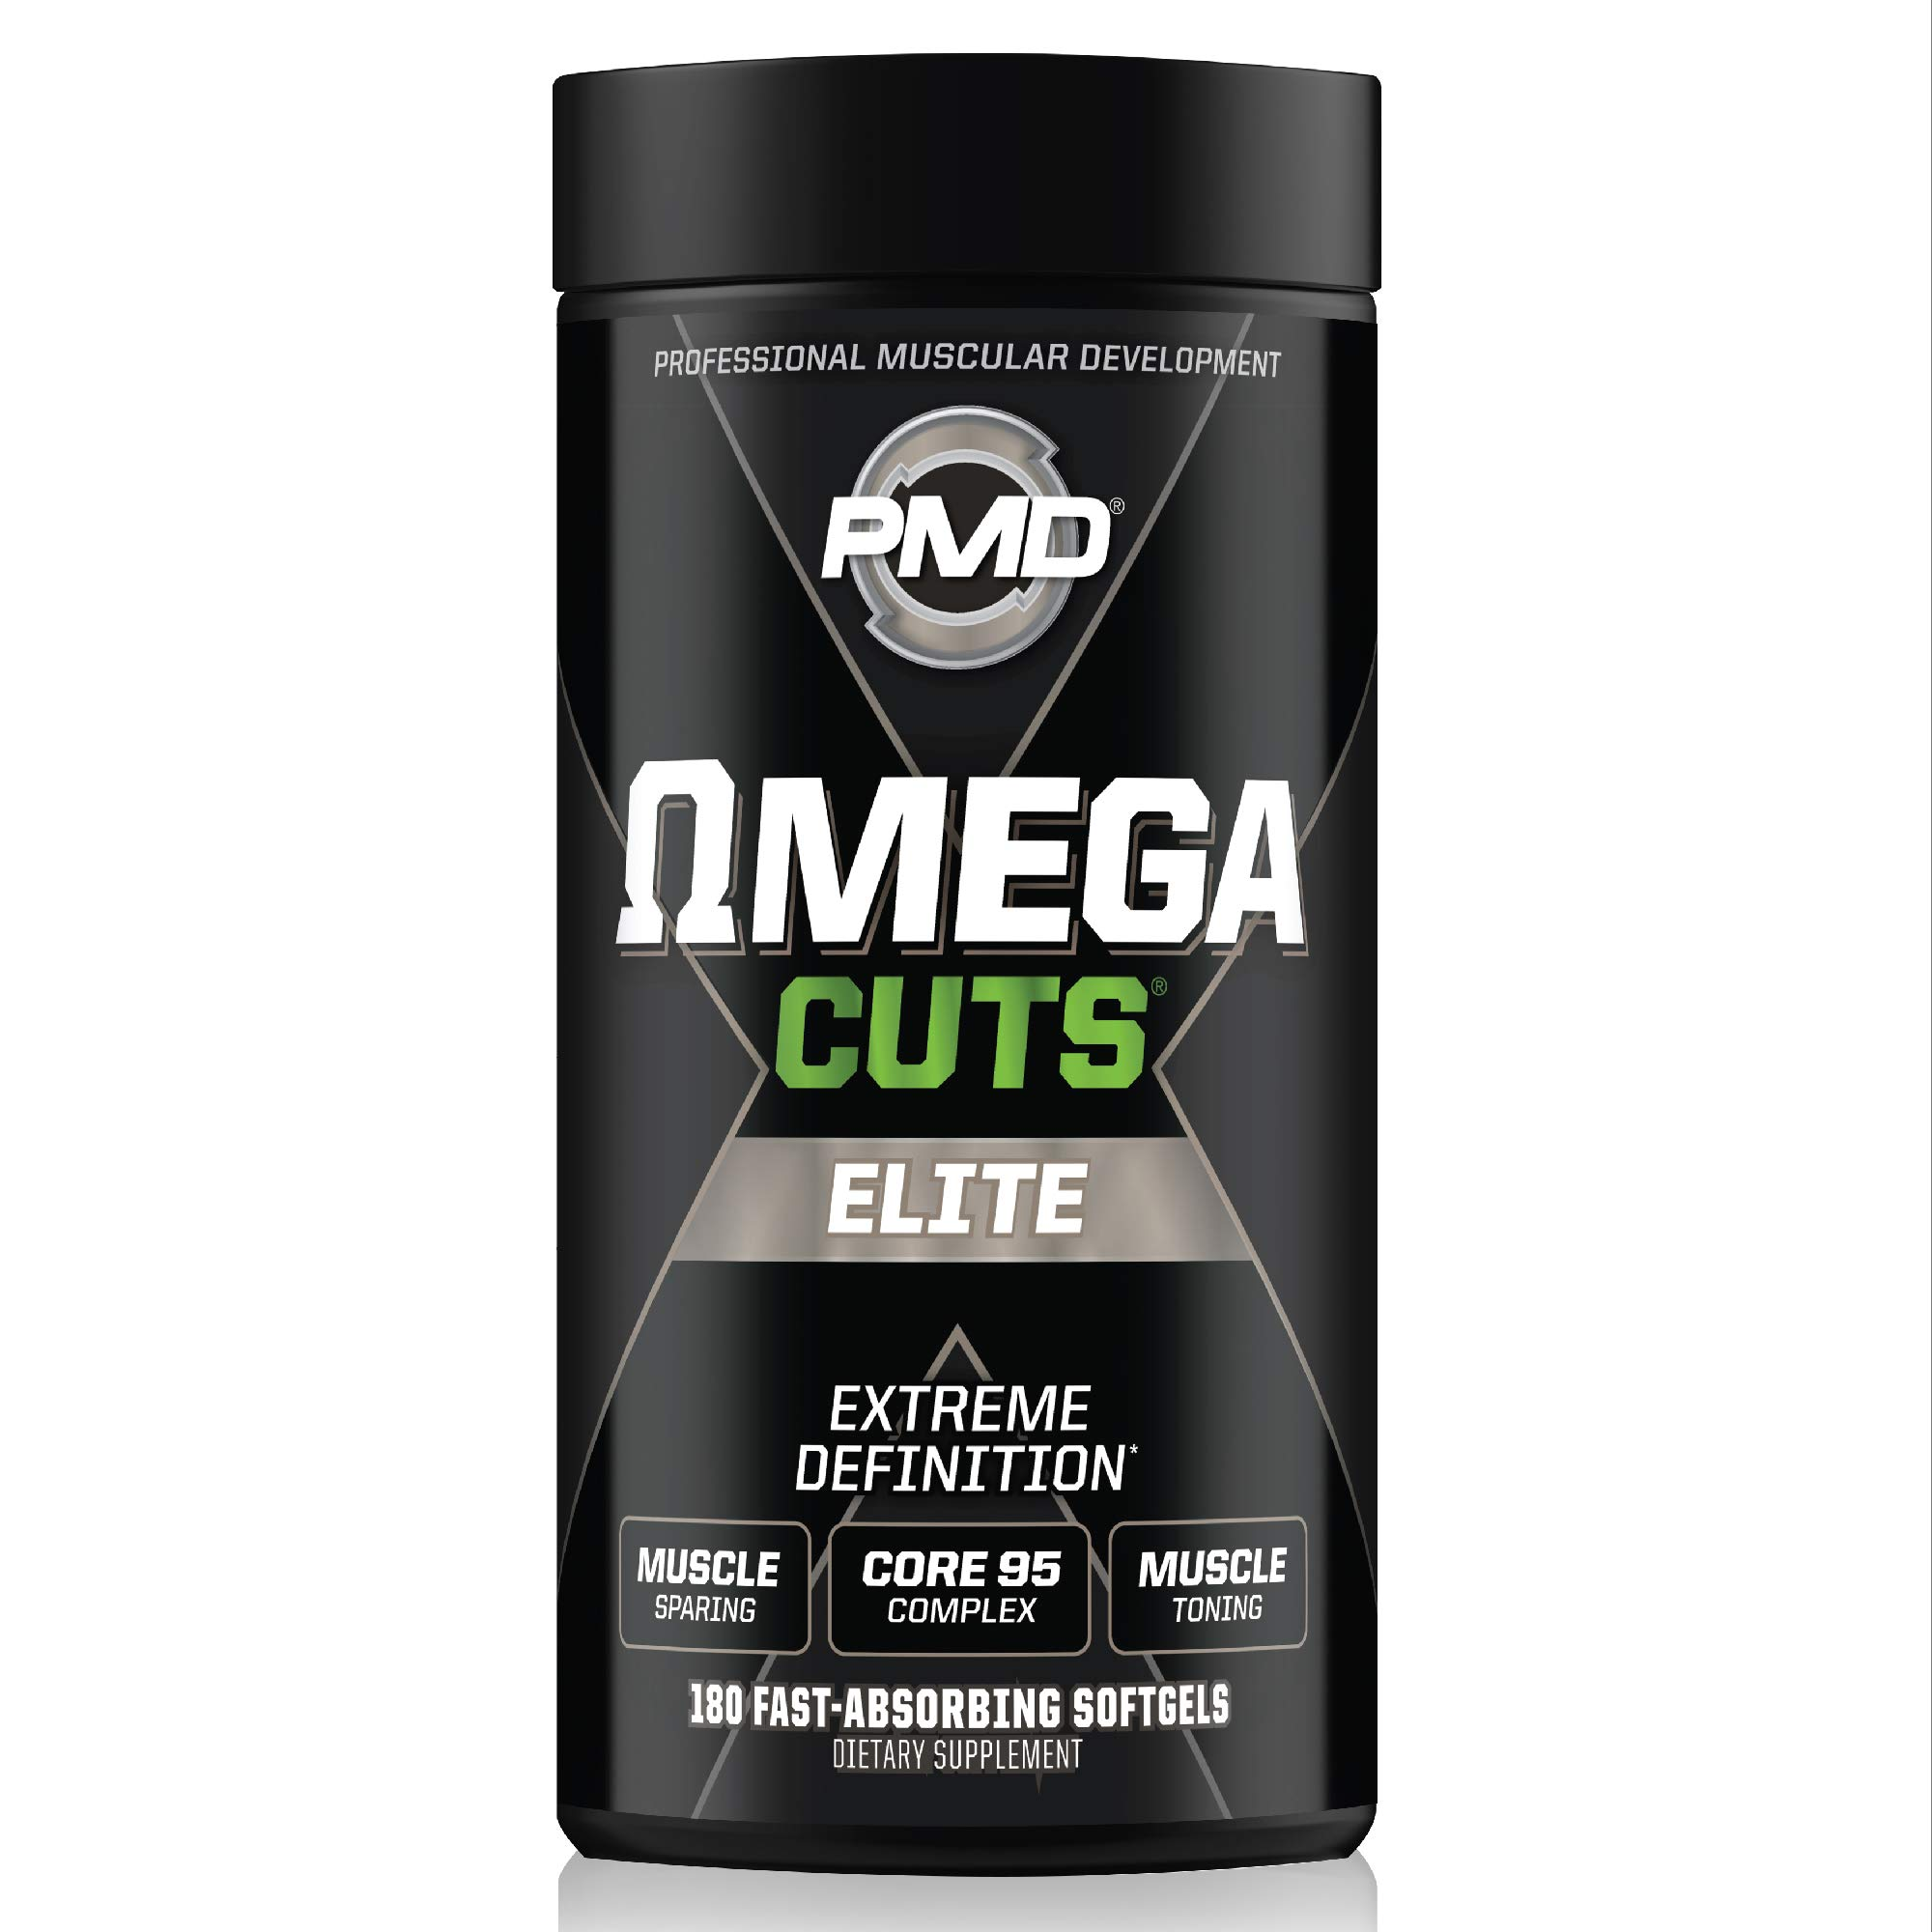 PMD Sports Omega Cuts Elite Zero Stimulant, Maximum Strength MCT, CLA and Omega Fatty Acid Complex Formula for Muscle Definition and Maintenance - 180 Softgels by PMD